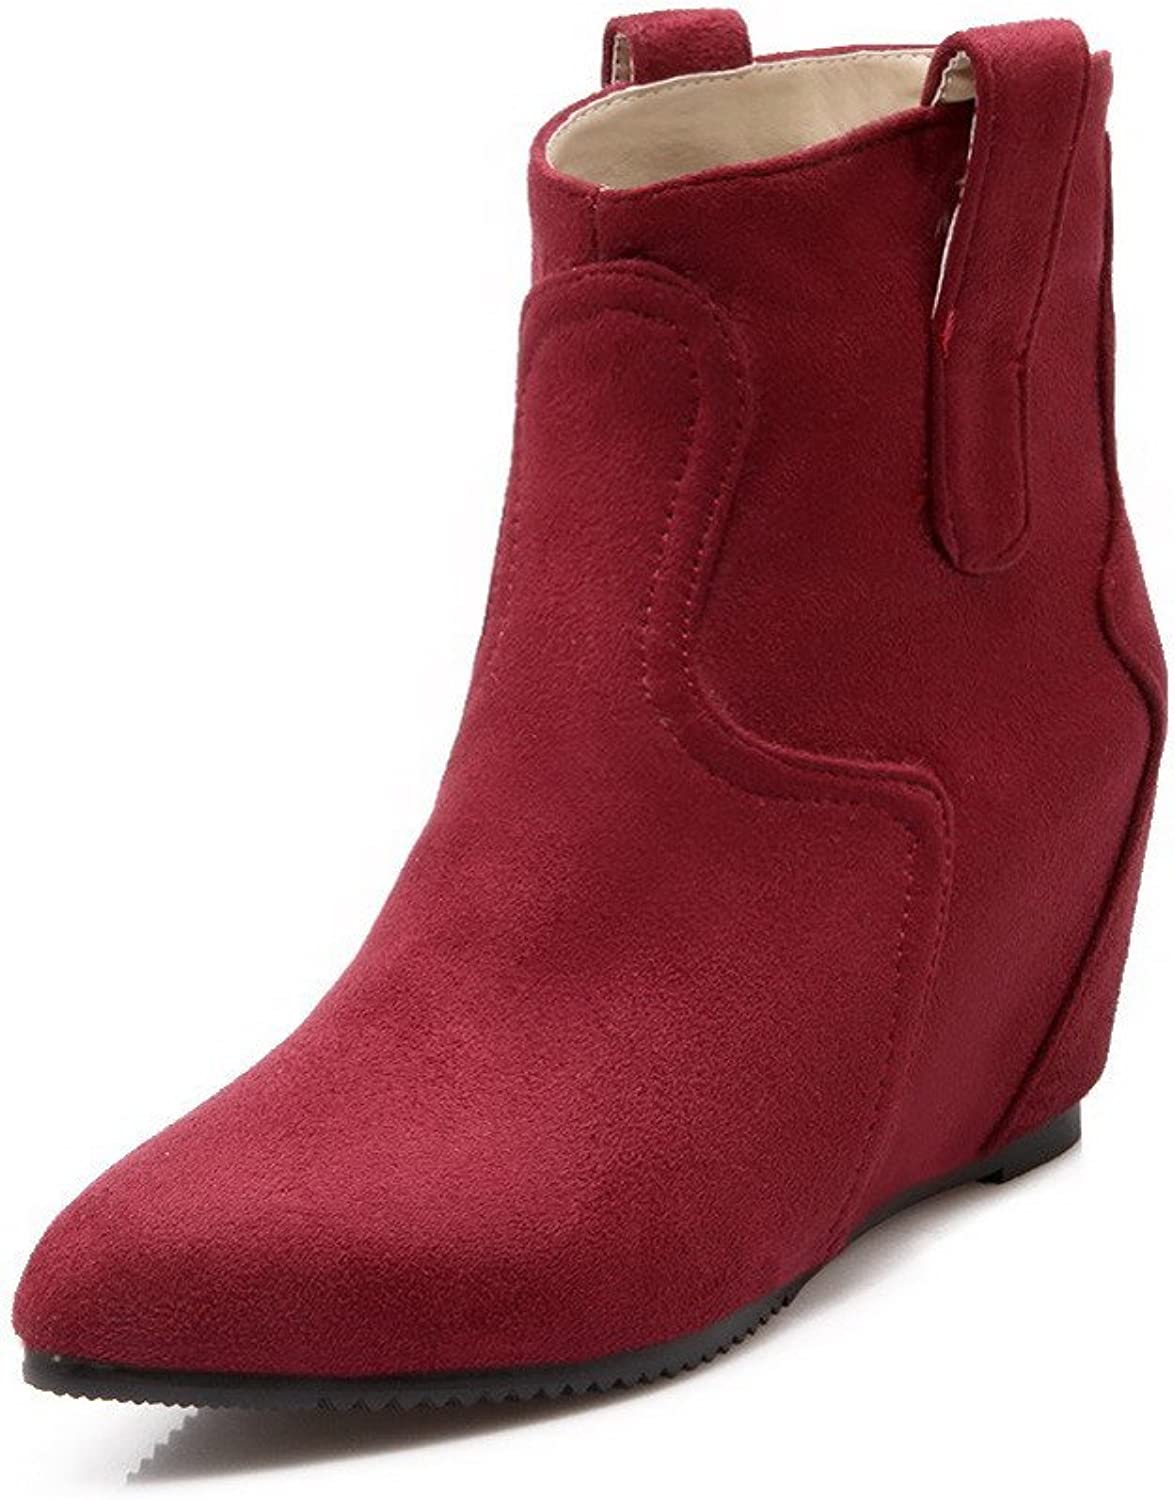 WeiPoot Women's Low-top Pull-on Frosted Kitten-Heels Pointed Closed Toe Boots